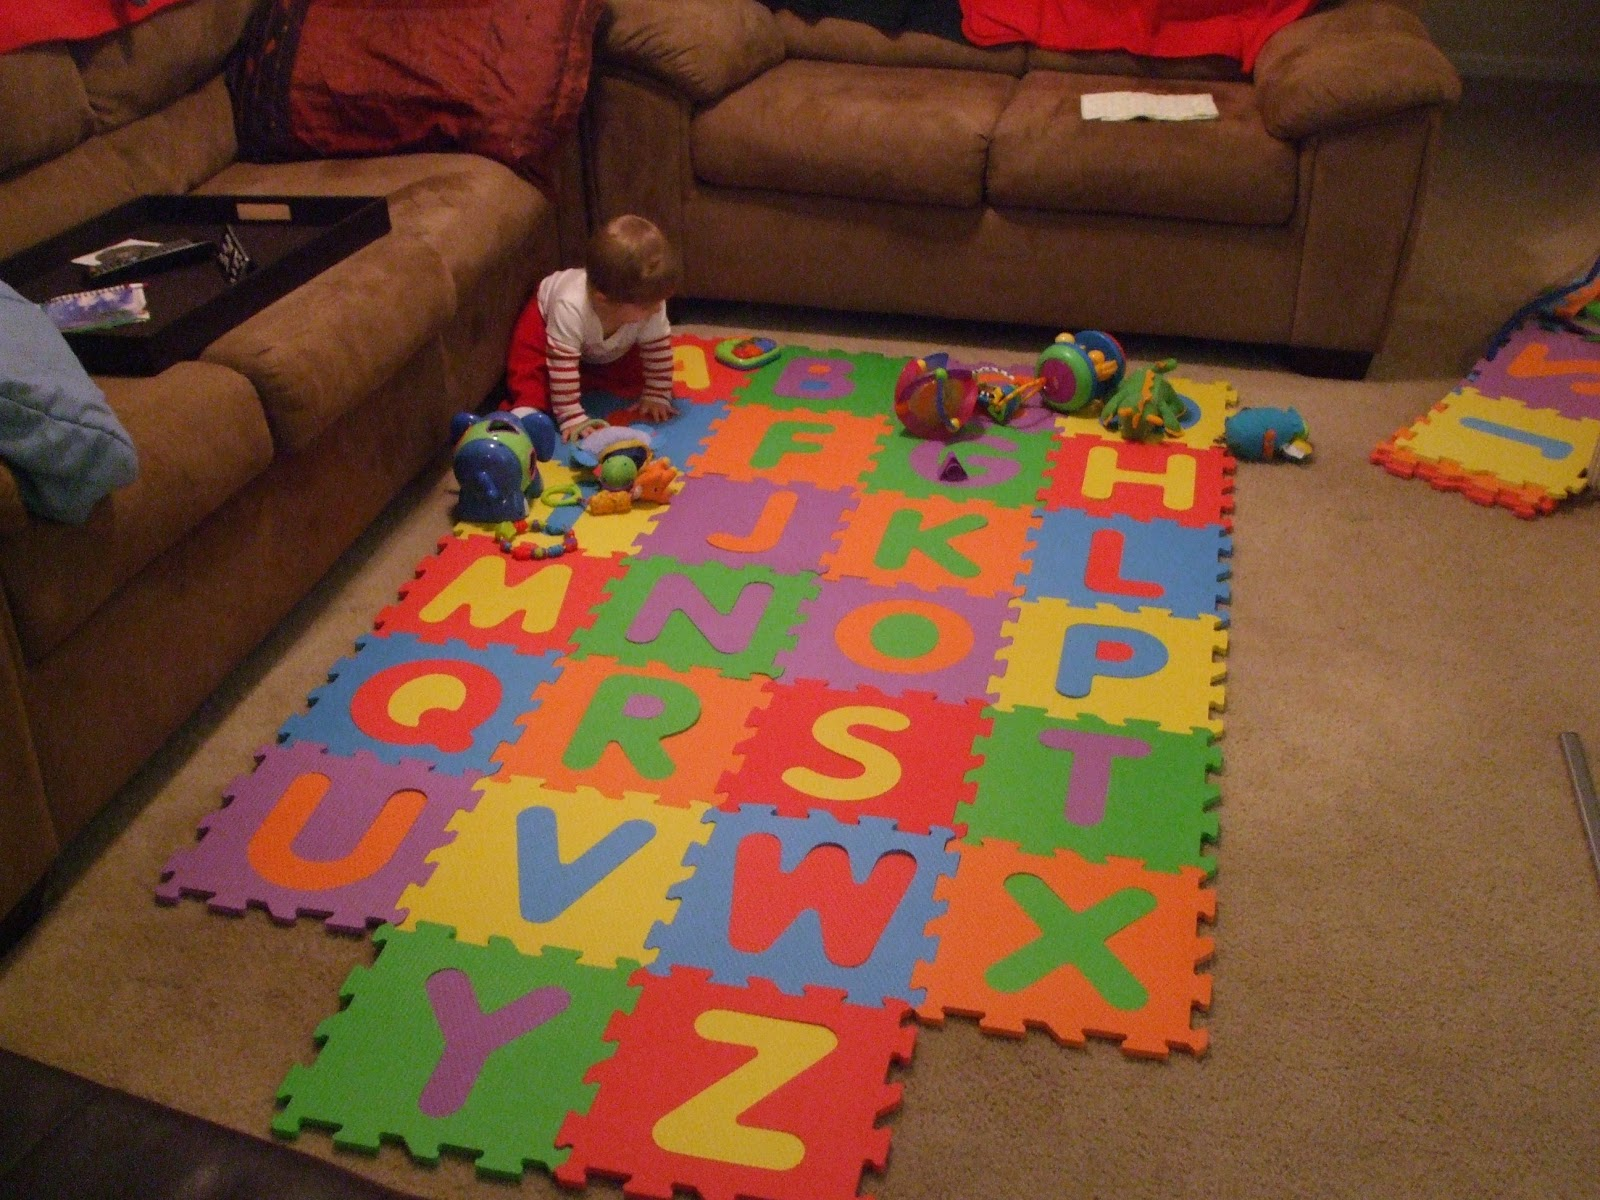 Next generation stay at home mom review imaginarium alphabet we got it right away and laid it out on the floor you can set the pieces any way you would like we set it up just regular to try it out dailygadgetfo Images